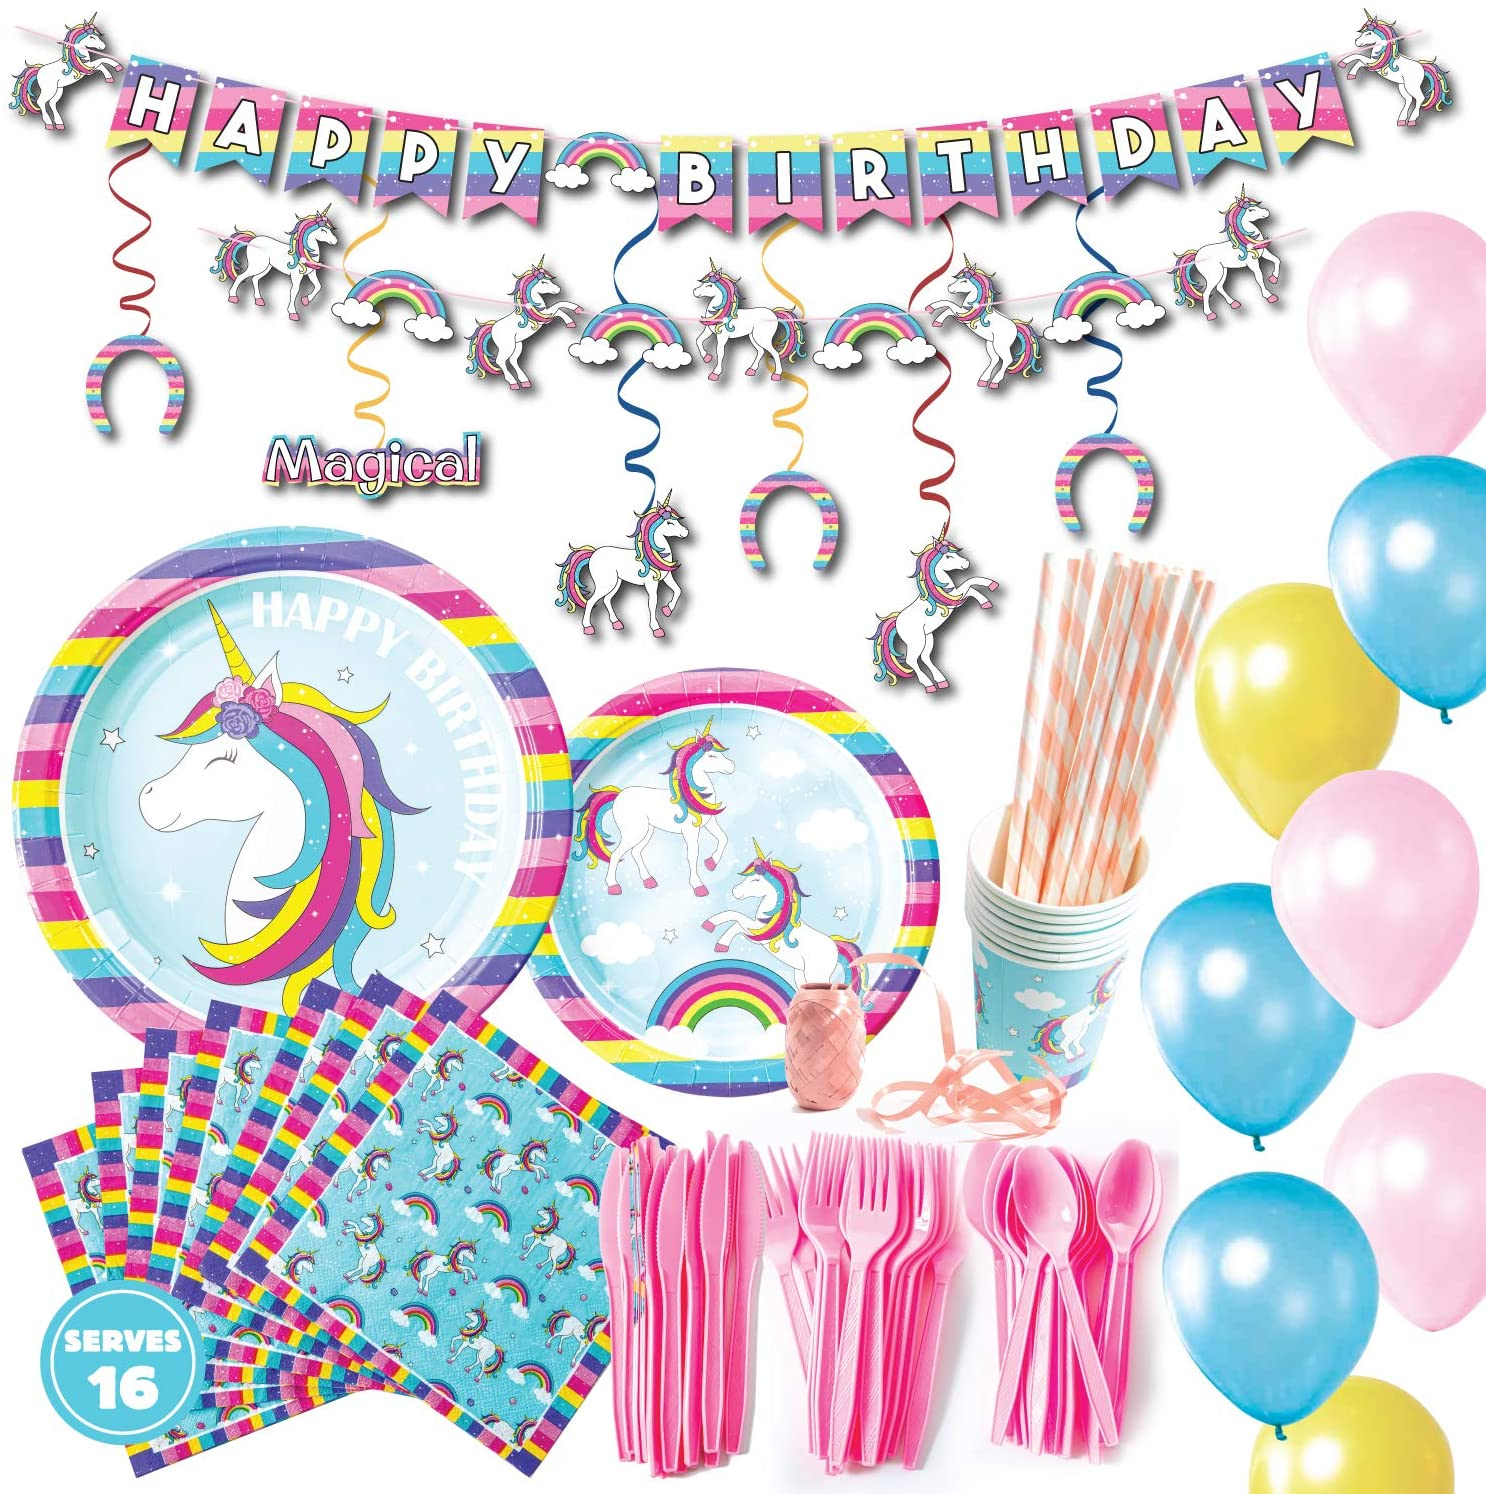 Whoobli Unicorn Birthday Party Supplies (Serves 16), Unicorn Party Supplies incl Plates, Utensils, Cups, Napkins and Unicorn Party Decorations for Little Girls